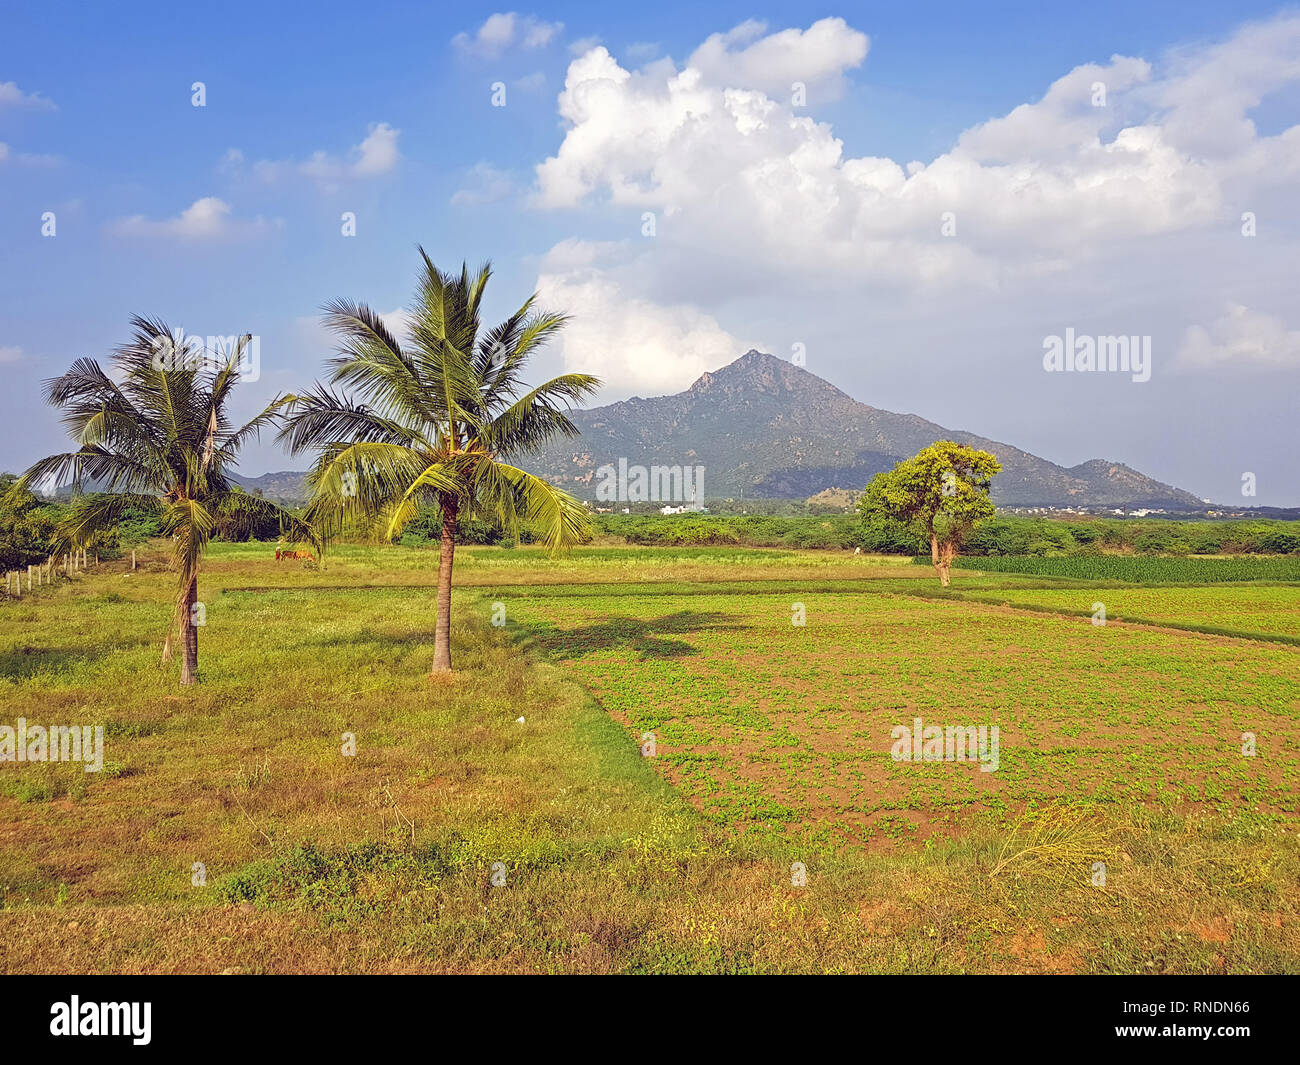 The mountain Arunachala in Tiruvannamalai Tamil Nadu India is referred to in the ancient scriptures as the oldest mountain on earth and modern researc - Stock Image